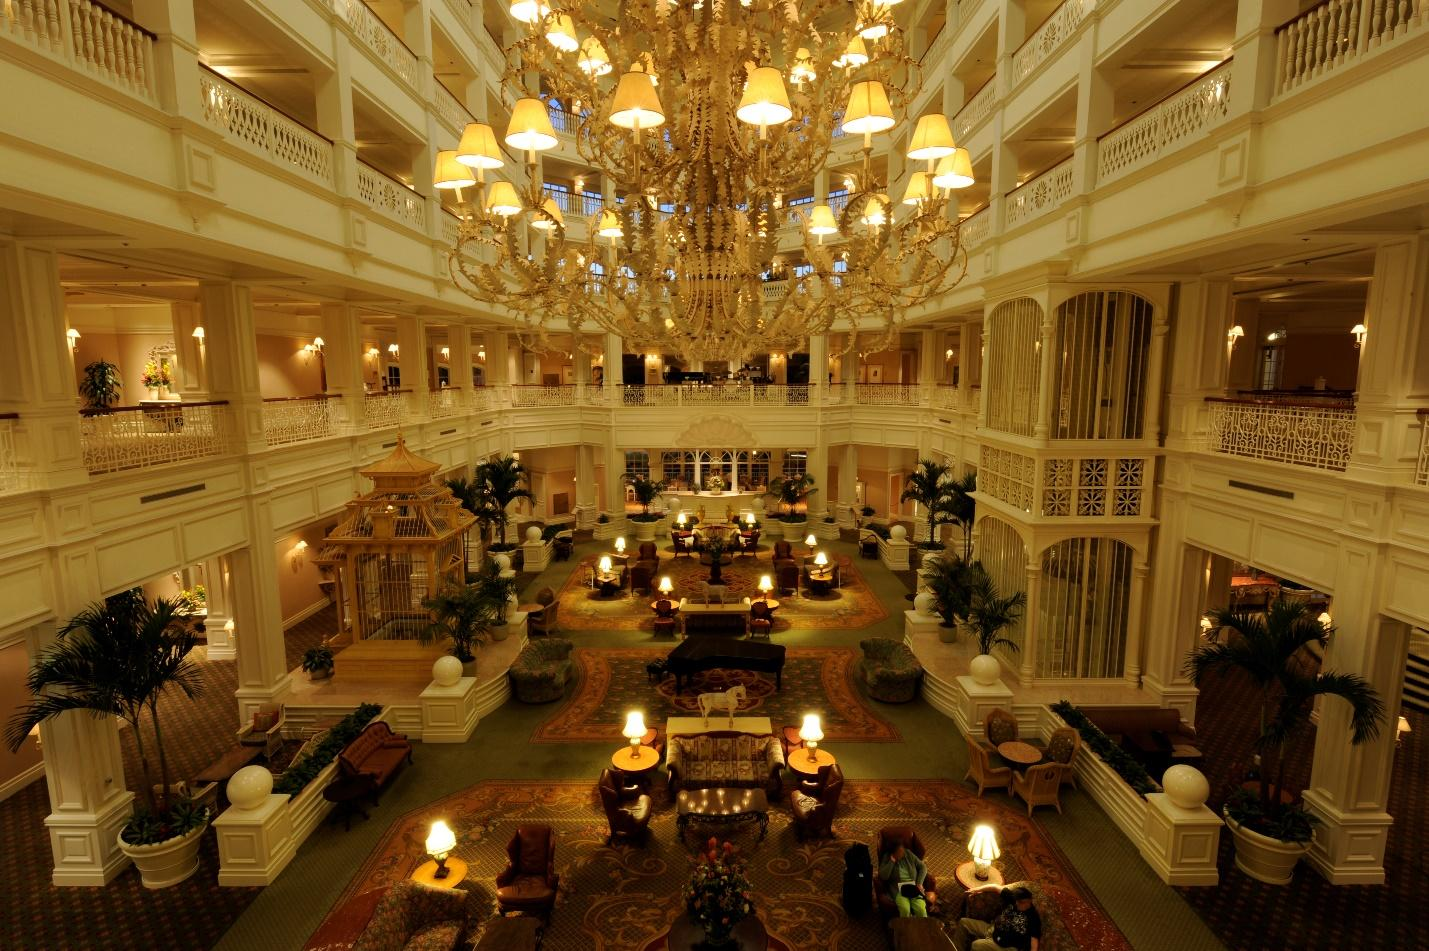 Disney resort inside main entrance